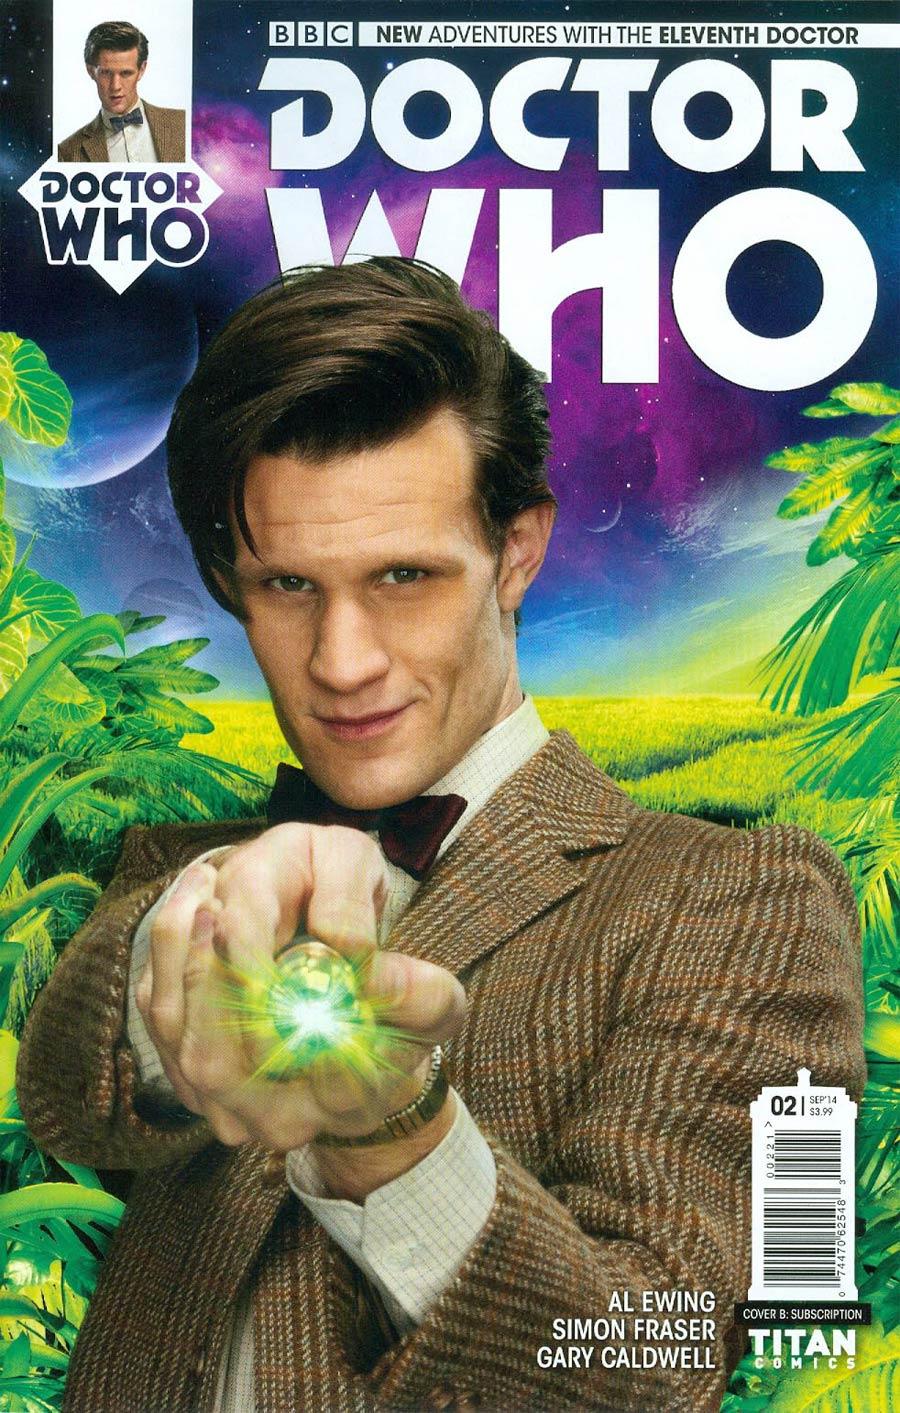 Doctor Who 11th Doctor #2 Cover B Variant Photo Subscription Cover